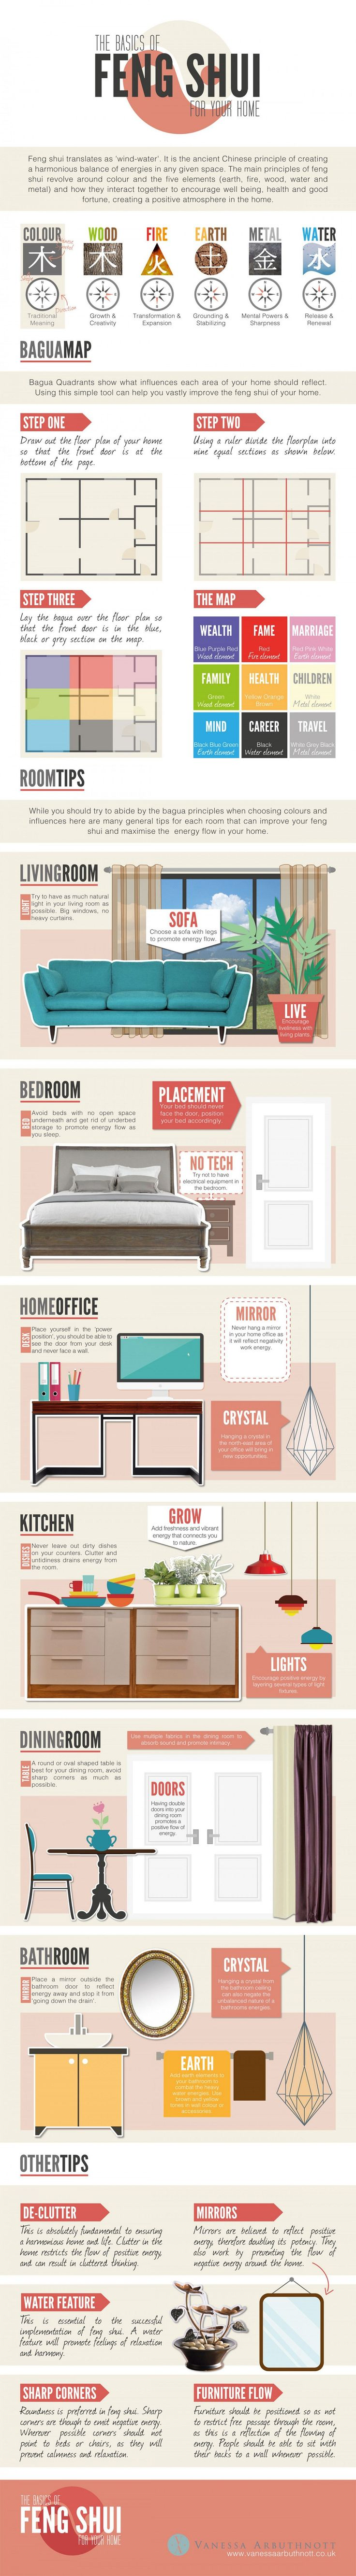 The Fundamentals Of Feng Shui For Your Dwelling #Infographic